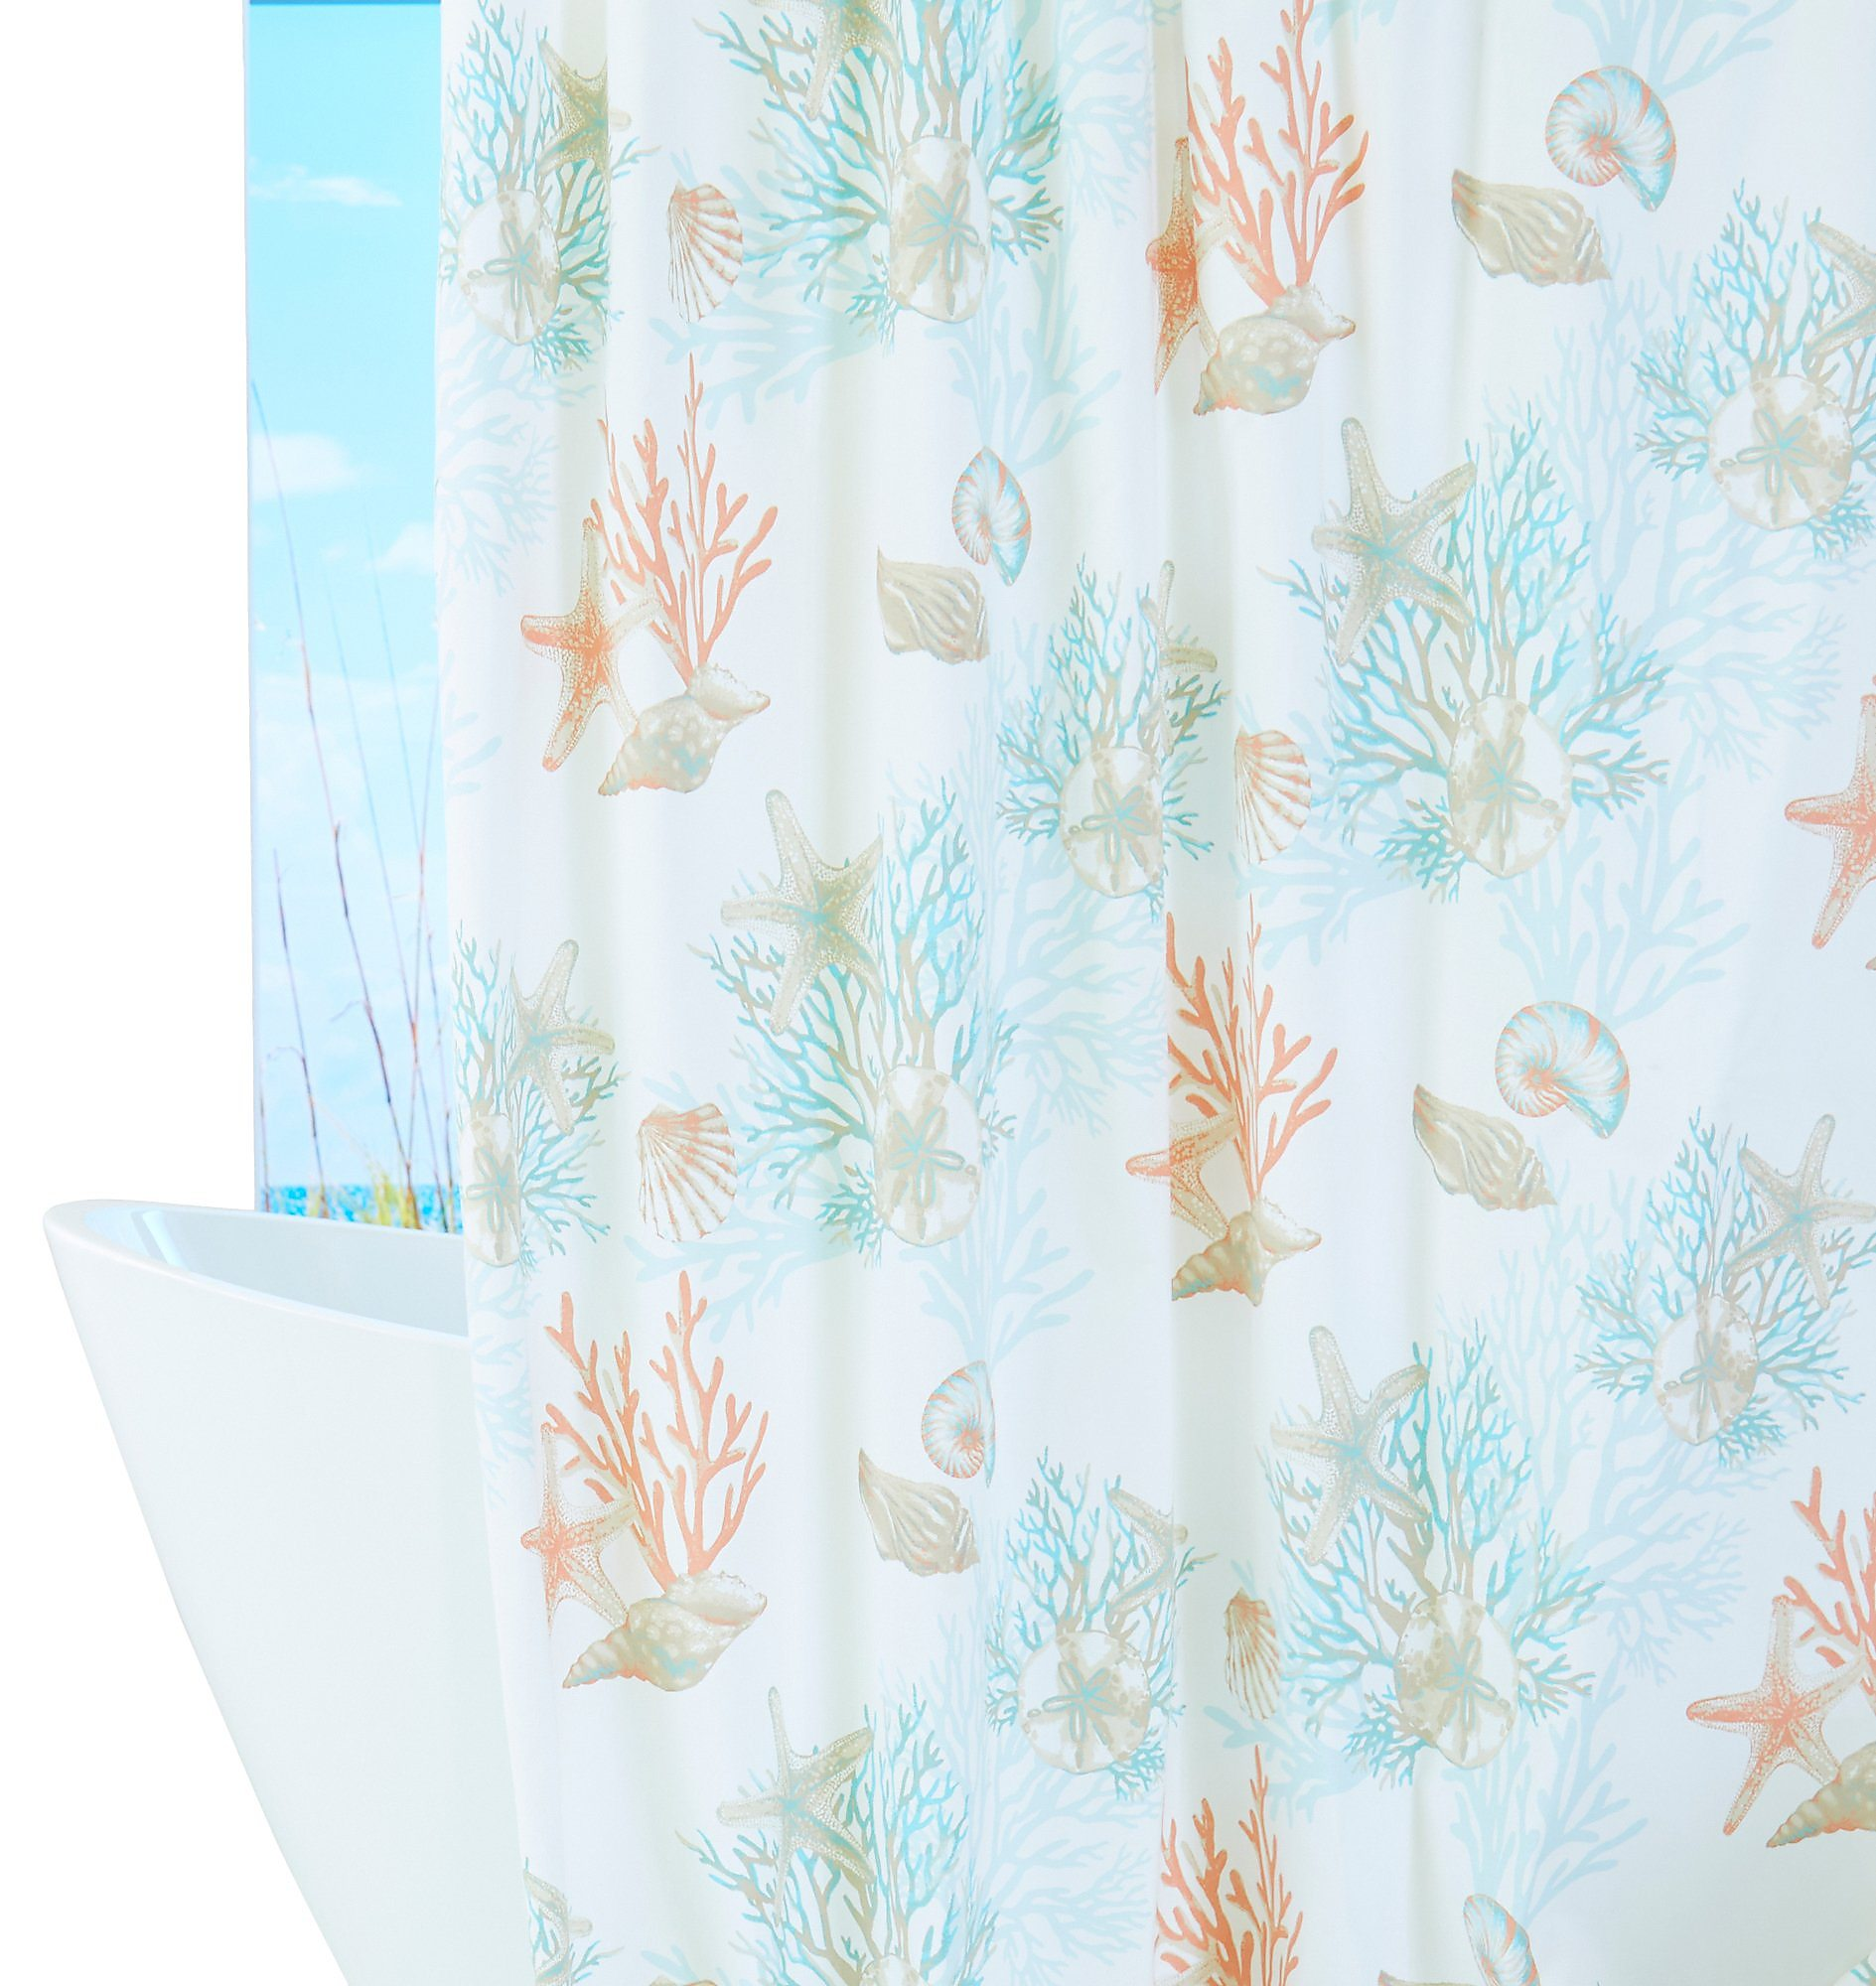 Coastal Home Under The Seashells Shower Curtain One Size White Blue Coral